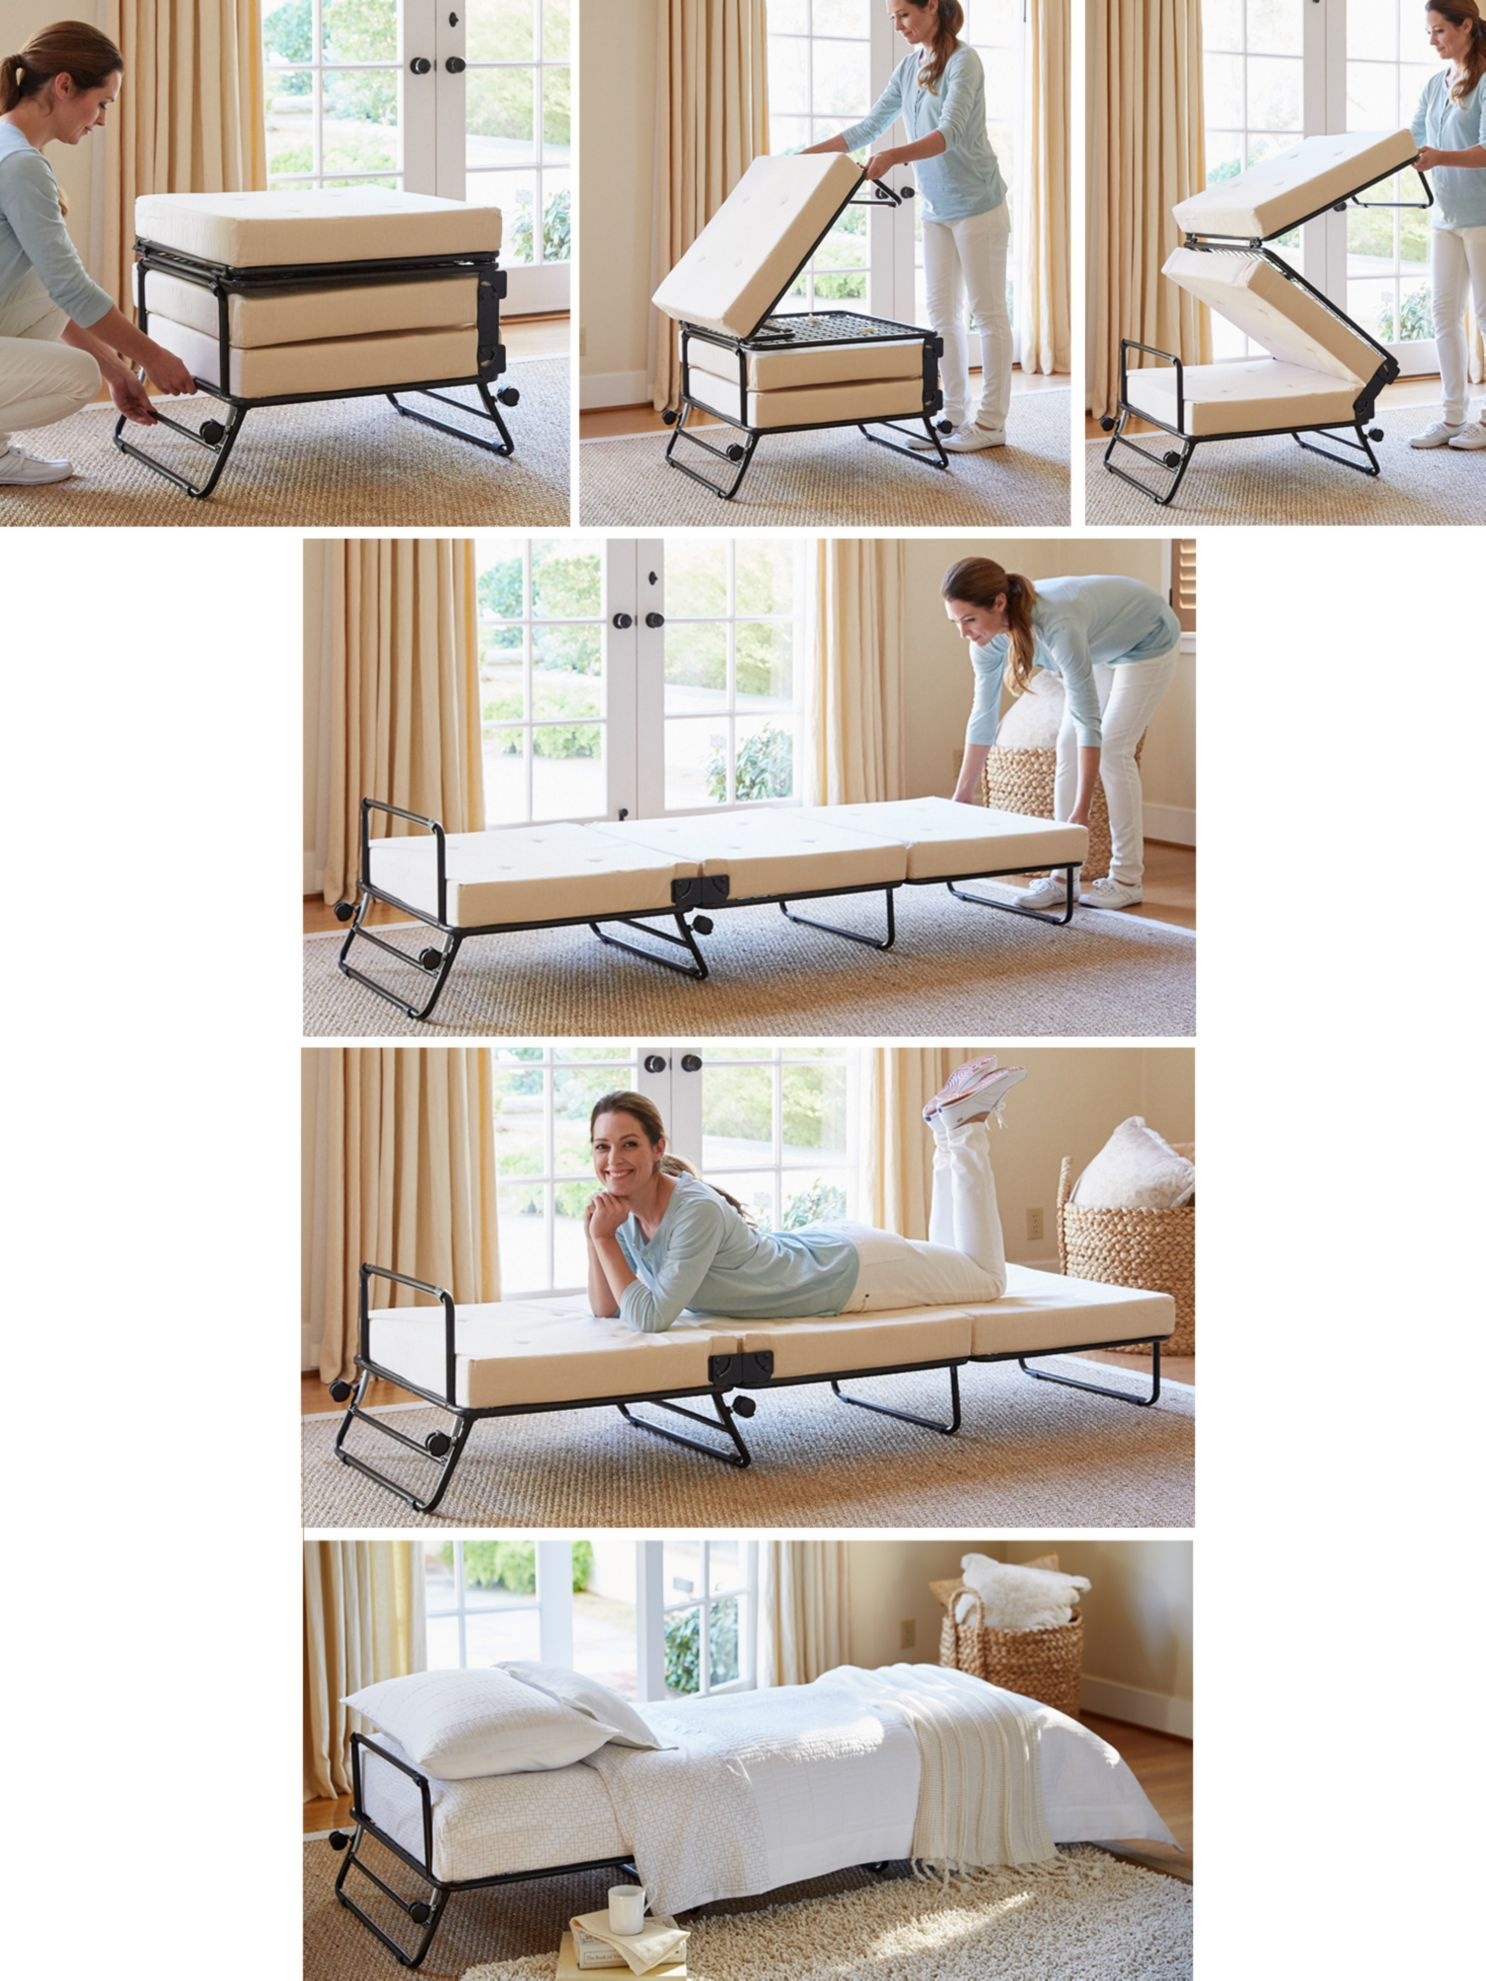 Fold Out Ottoman Bed - Fold out ottoman bed hide your guests in plain sight with the fold out